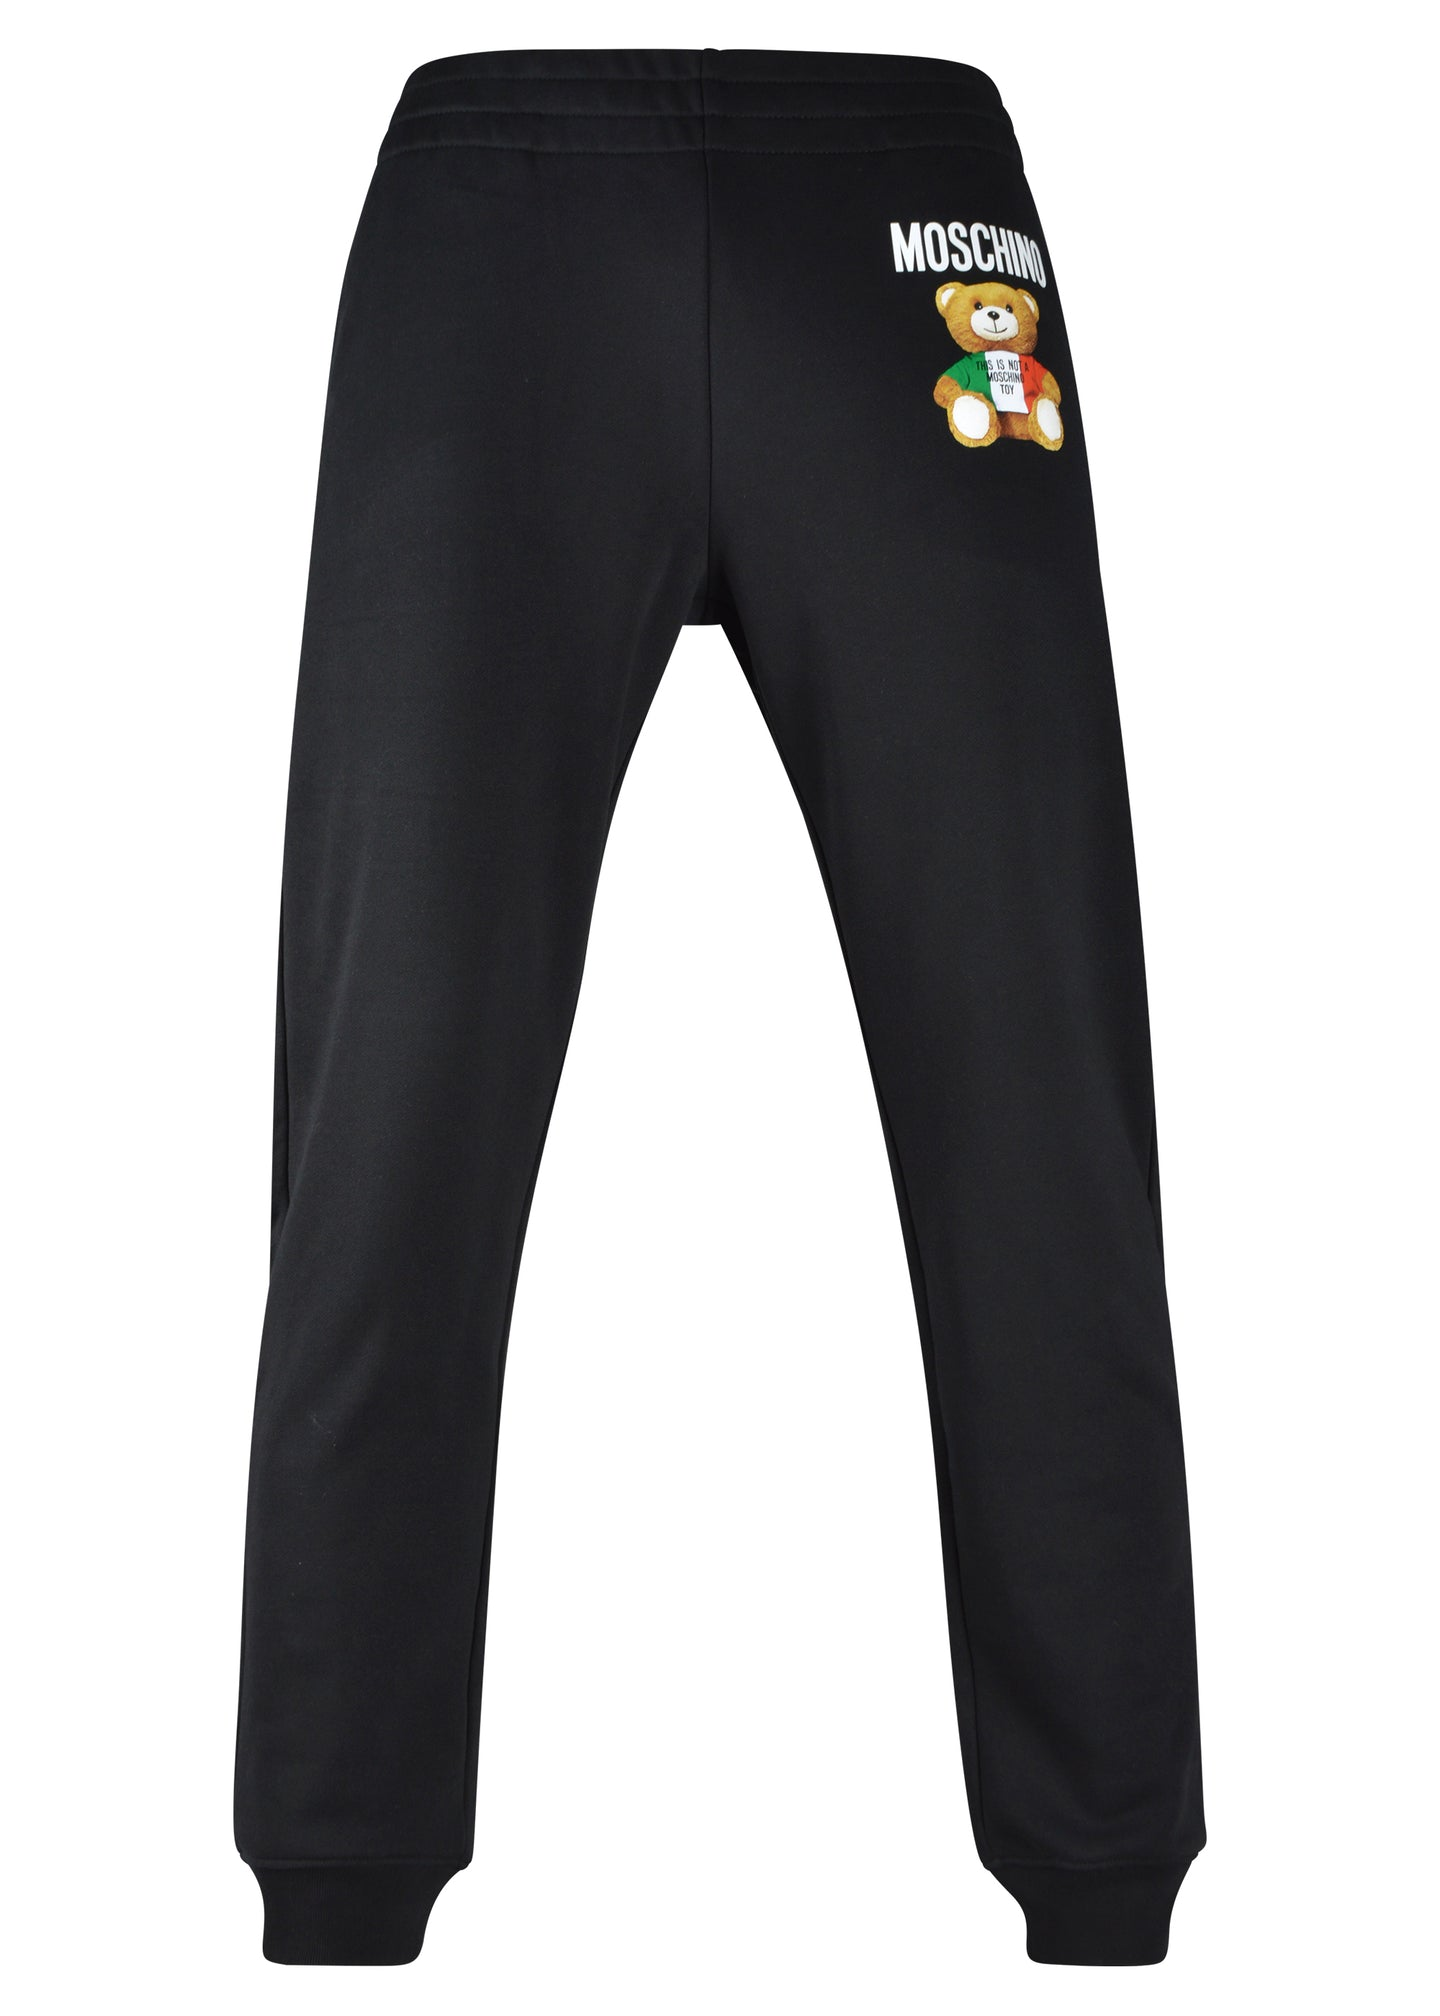 Moschino Couture - Teddy Bear Jogs Hidden Draw String Front Teddy Italia Image On Front Leg - 200001 - Black